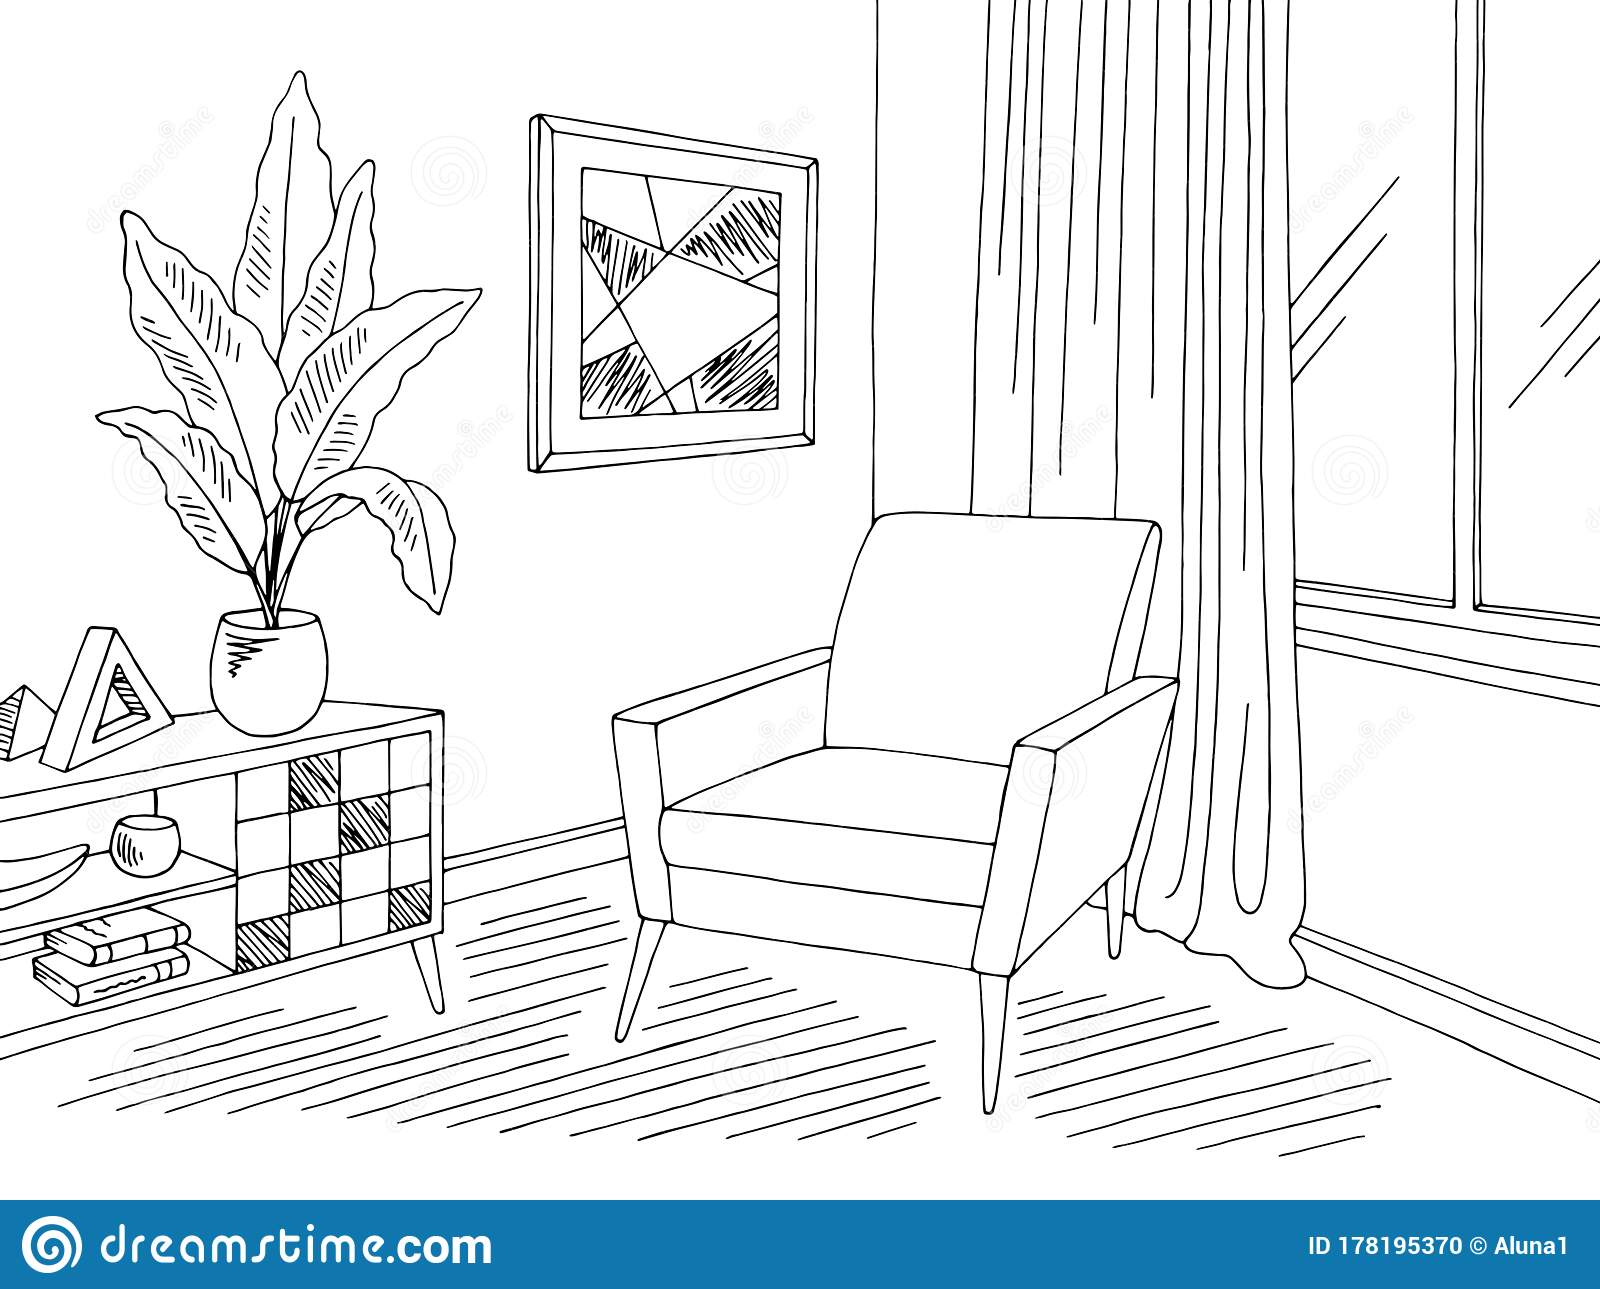 Living Room Graphic Black White Home Interior Sketch Illustration Vector Stock Vector Illustration Of Empty Domestic 178195370